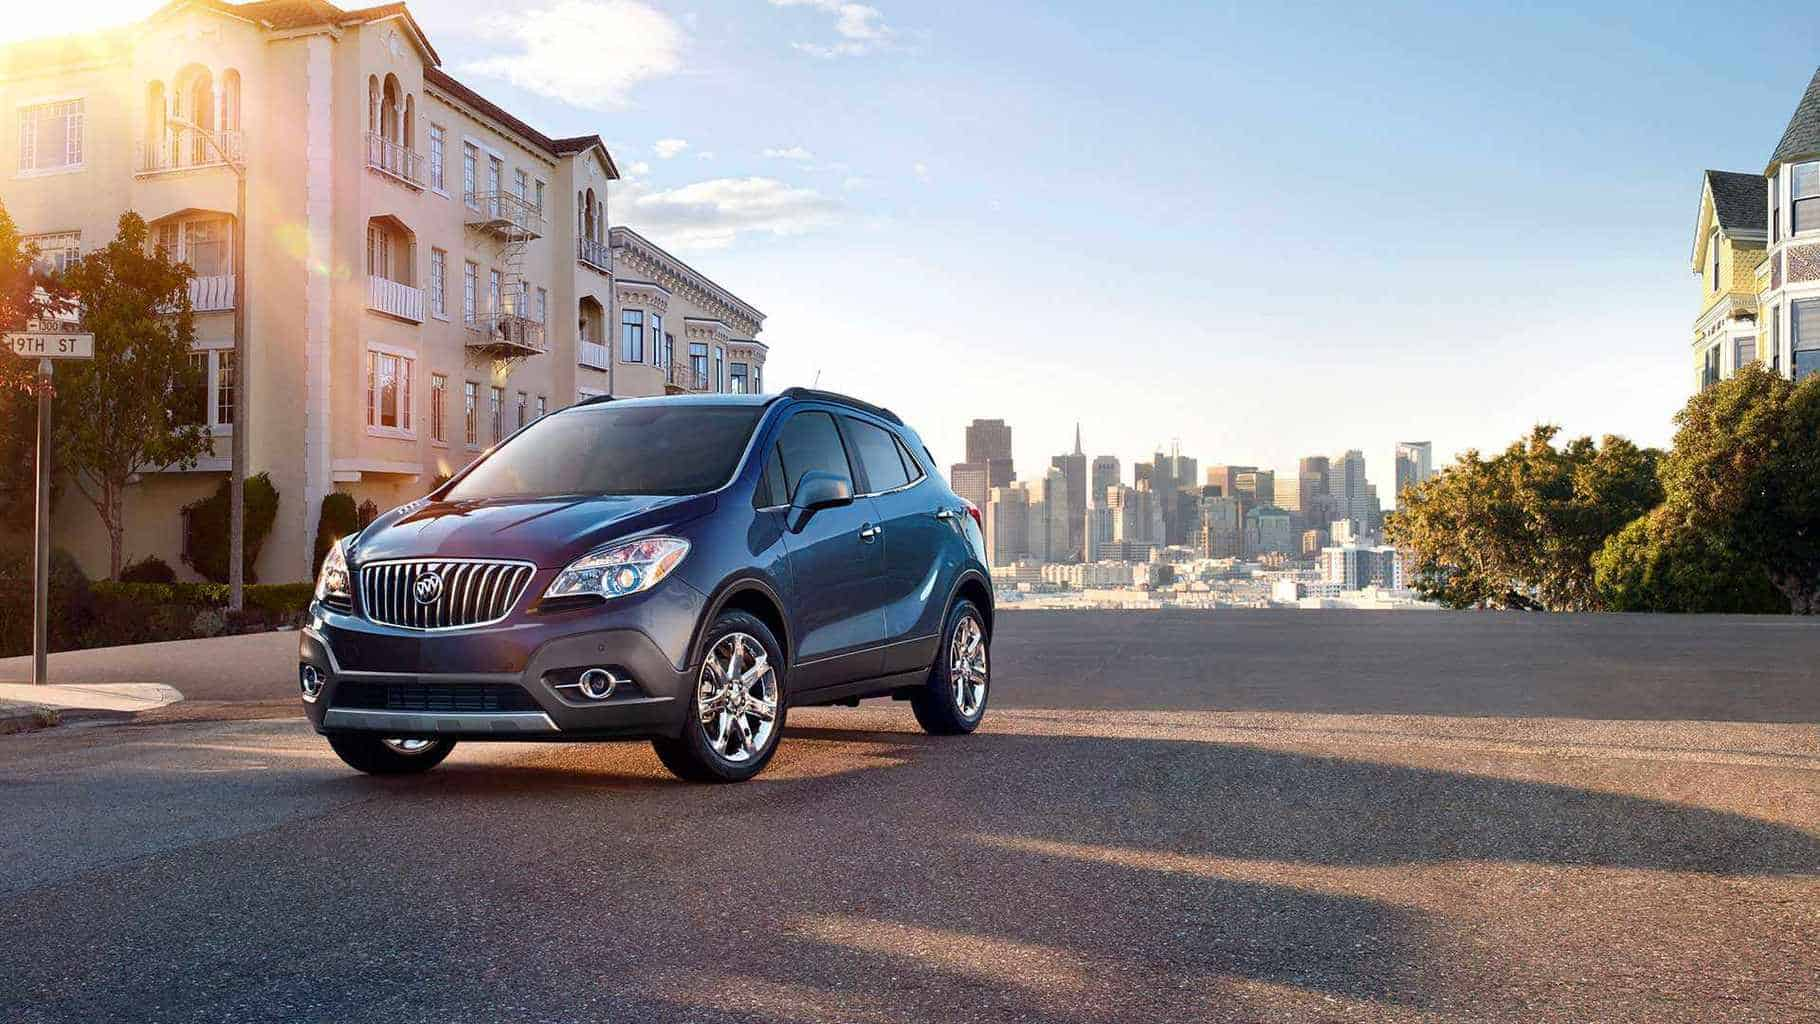 American Auto Reviews: A Compact Luxury SUV Made for the USA – 2013 Buick Encore